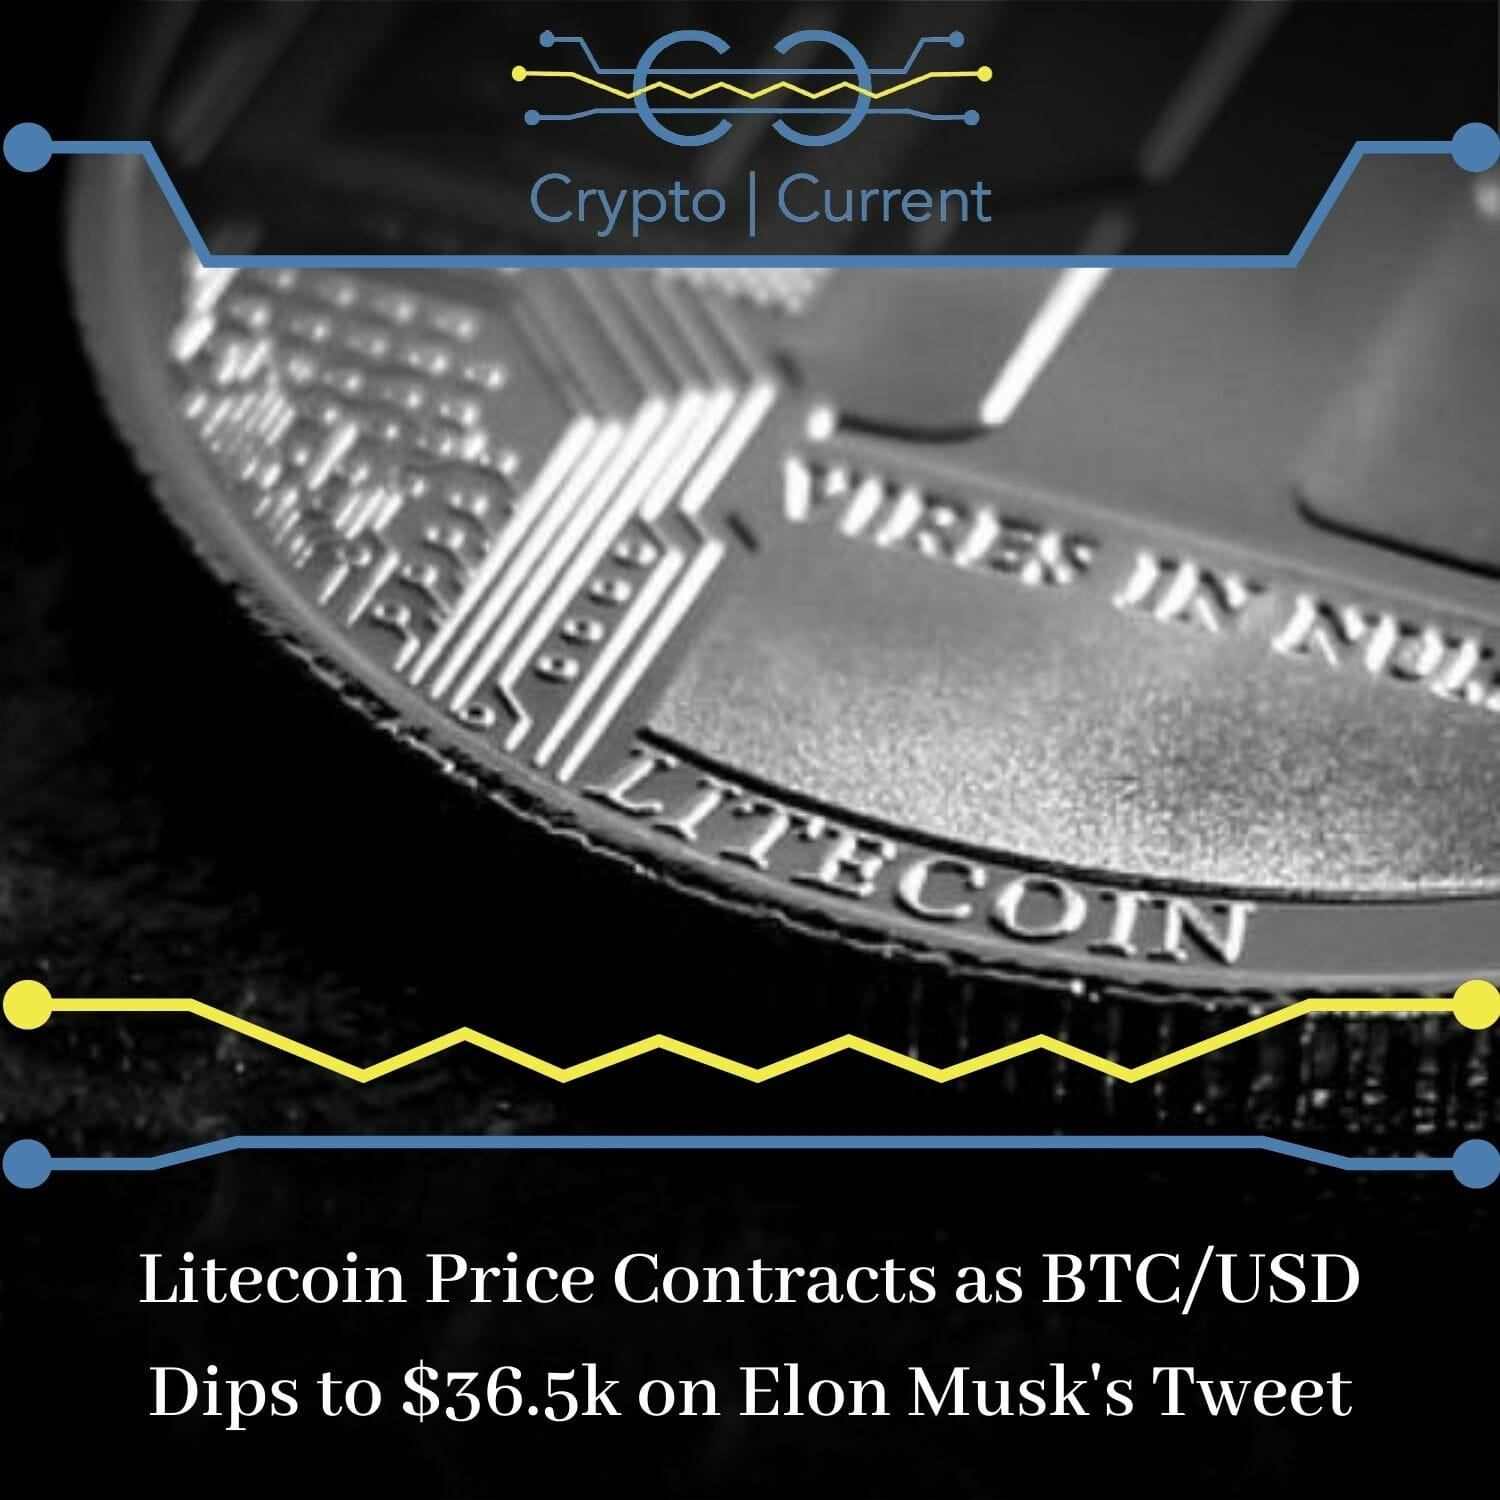 Litecoin Price Contracts as BTC/USD Dips to $36.5k on Elon Musk's Tweet